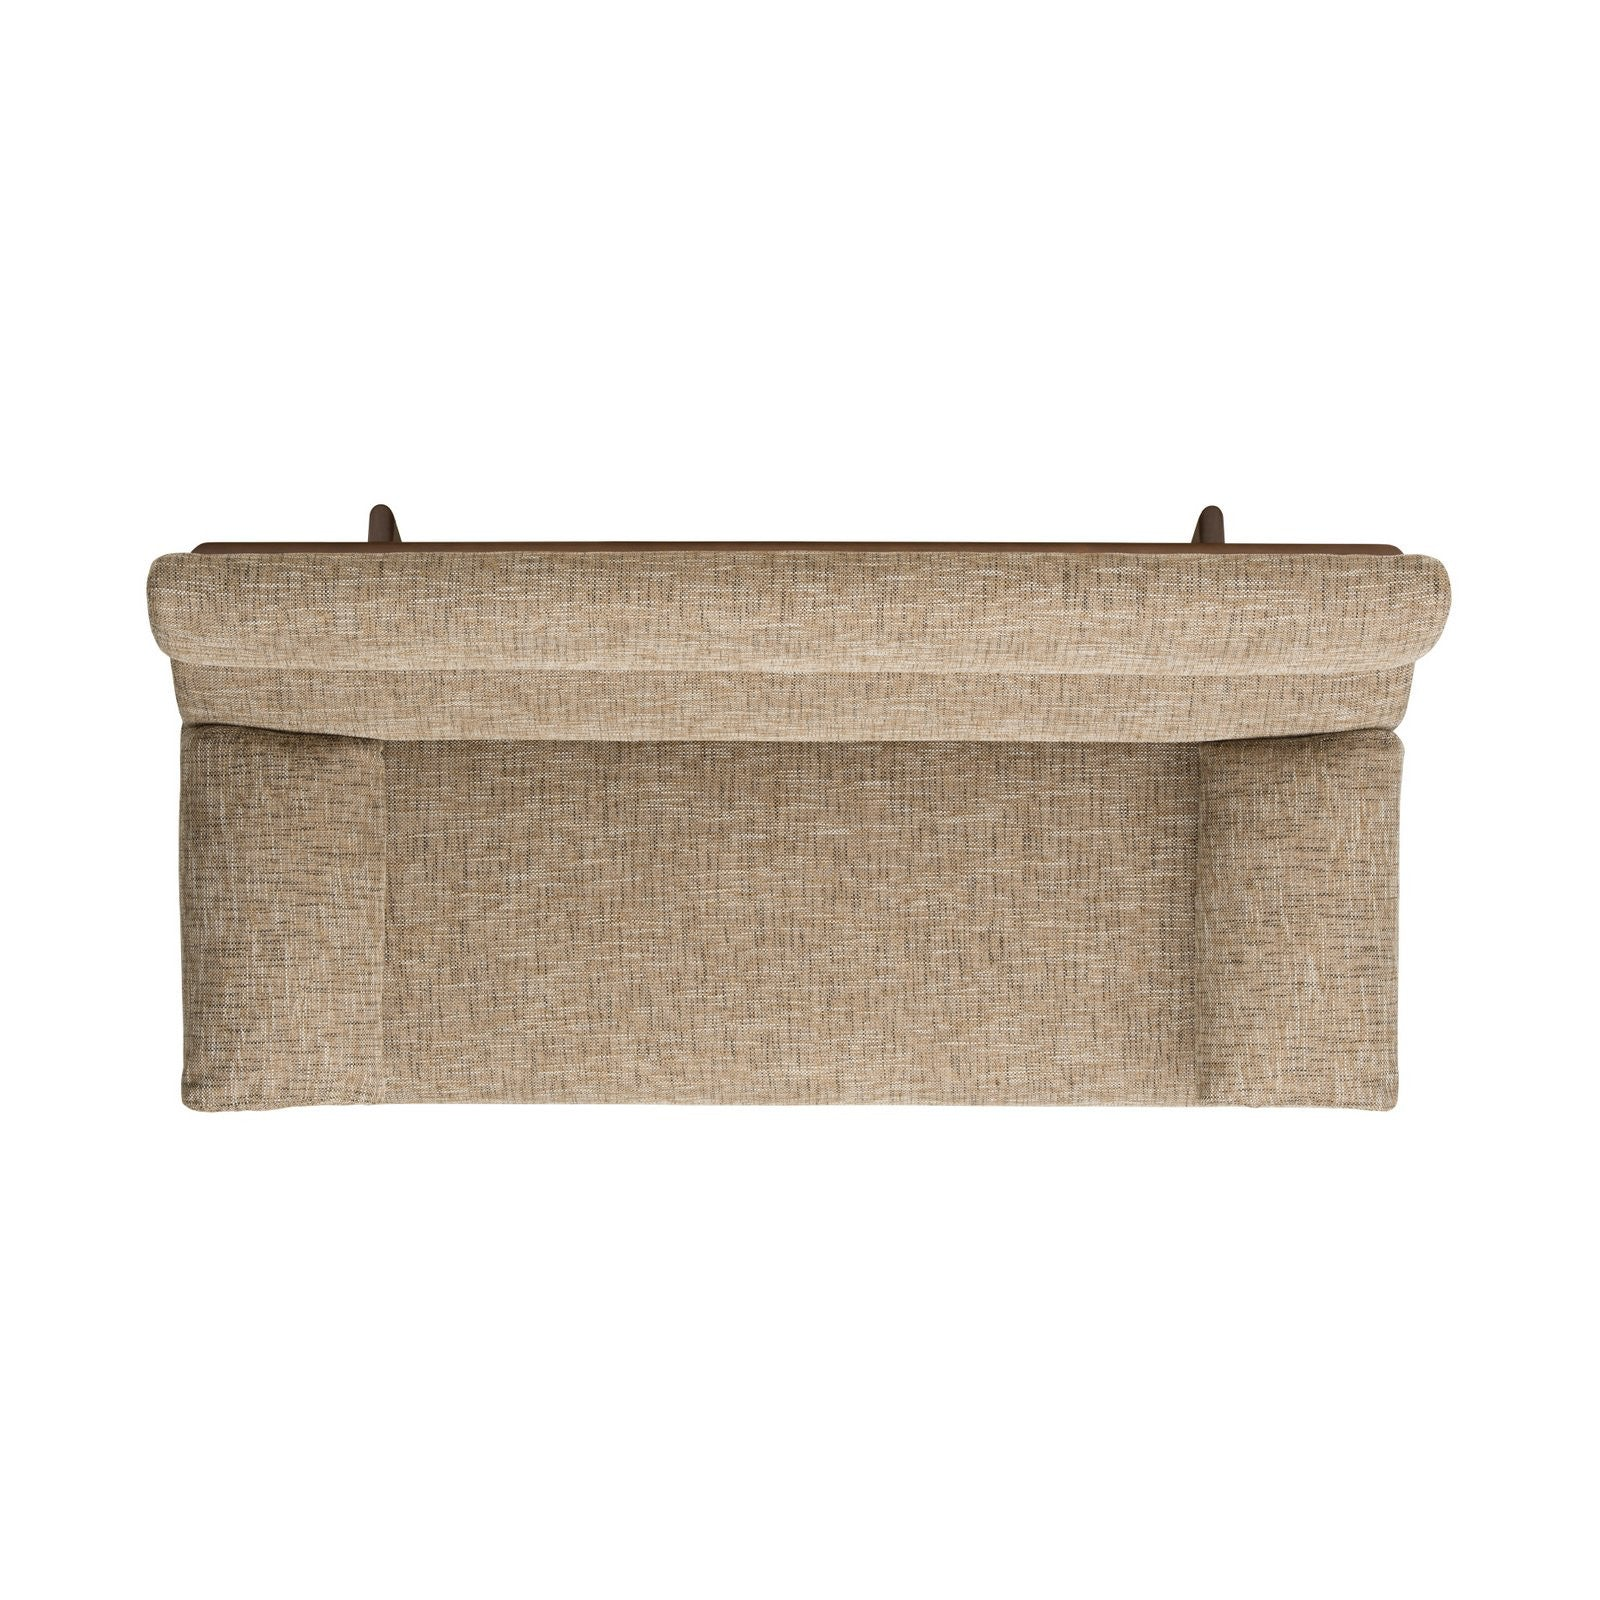 Conde House - Eclipse Sofa 2P - Sofa